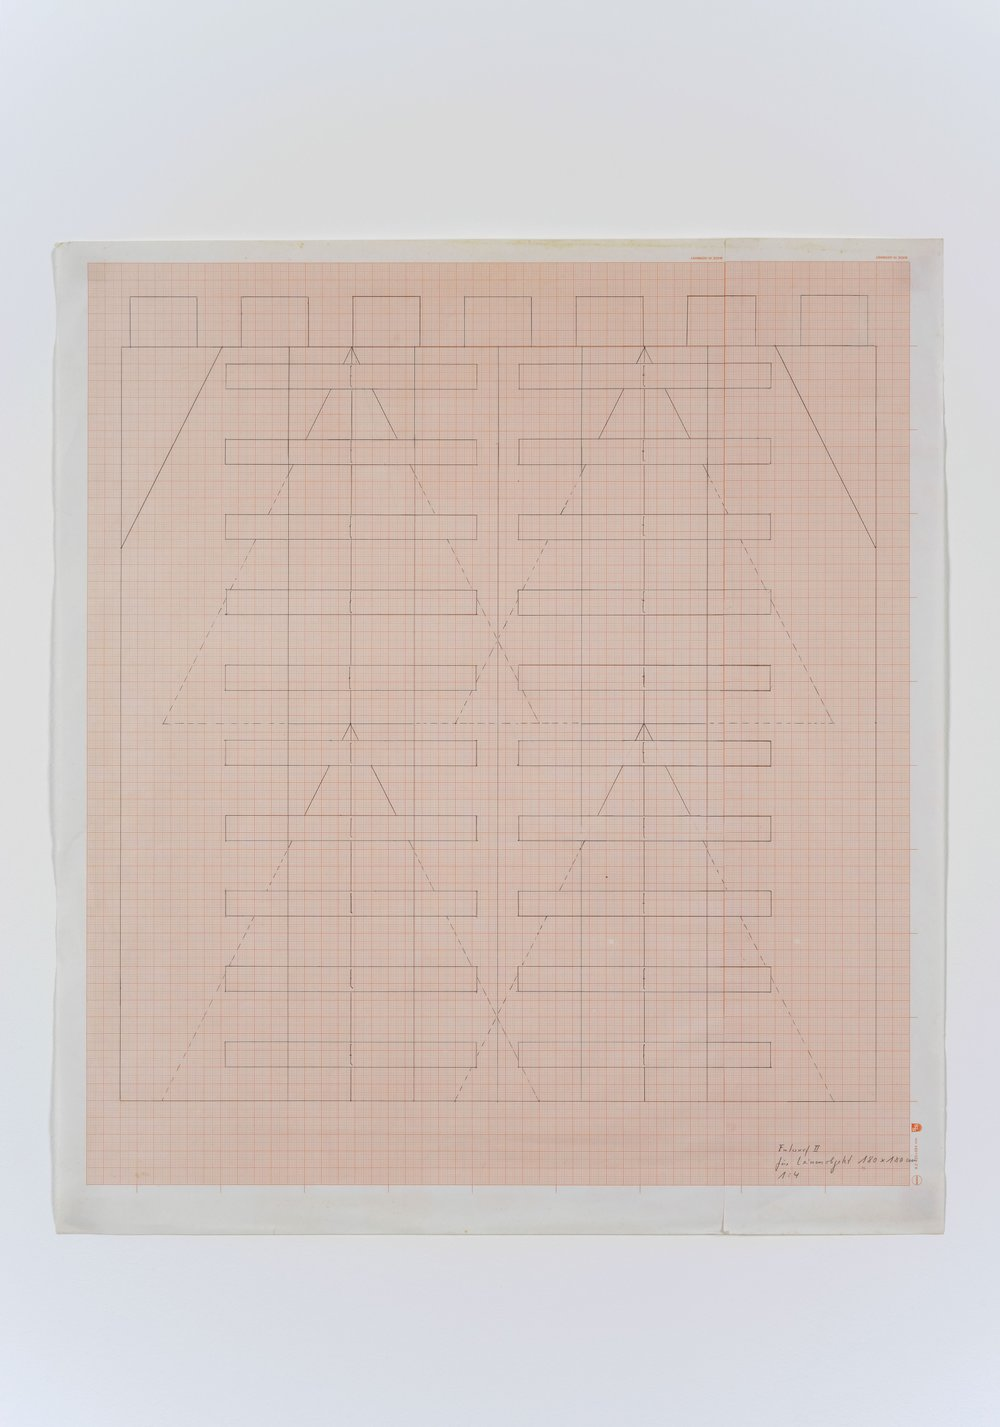 Untitled , early 1980's construction drawing on scale paper, 57 x 65 cm, framed